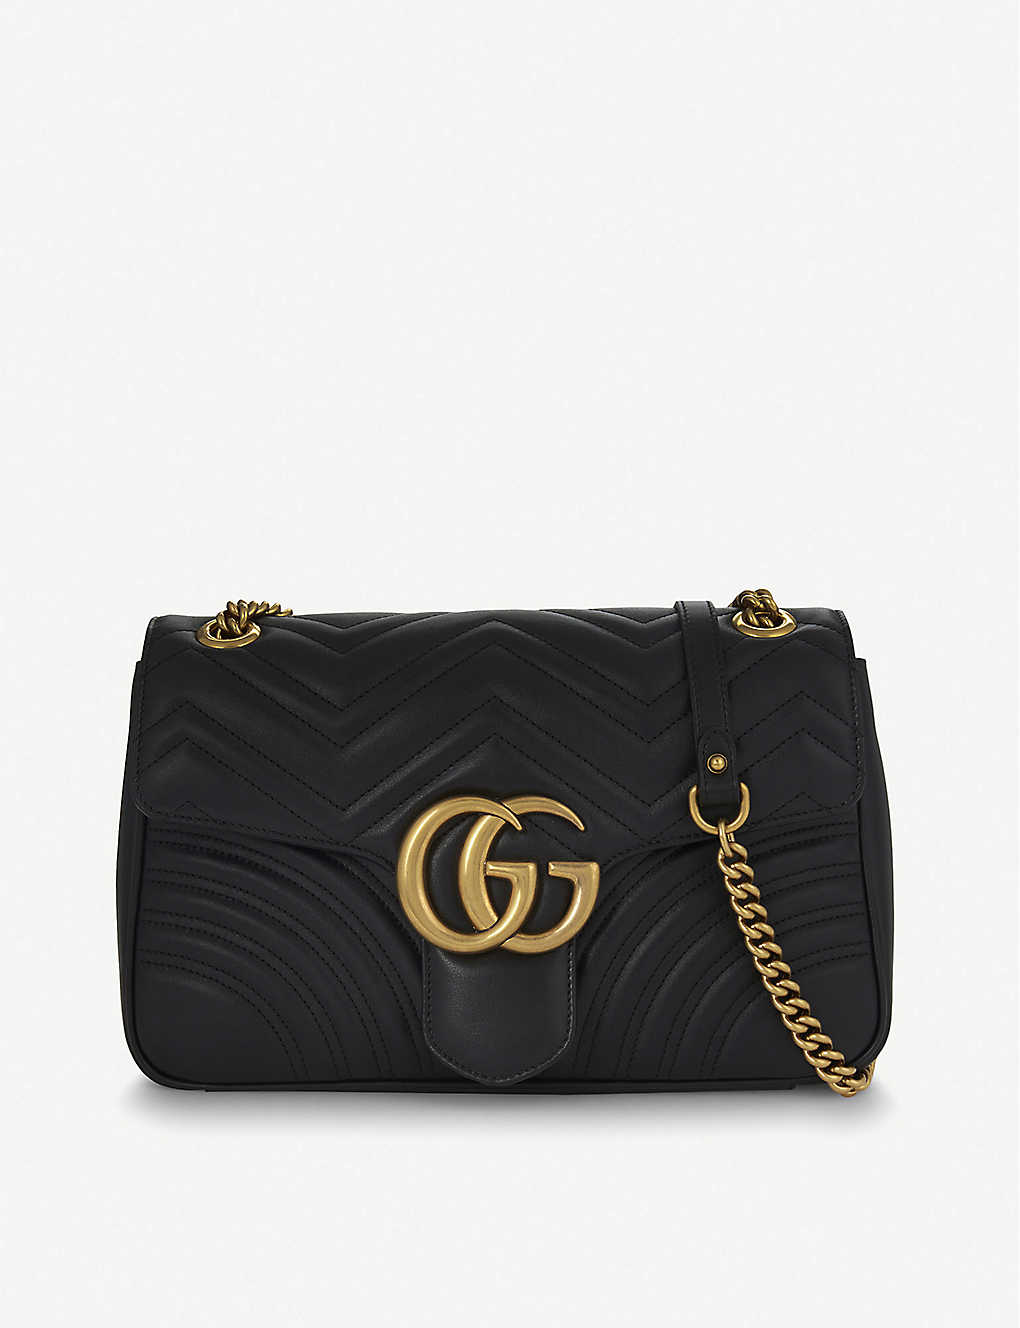 62cba510b8a5 GUCCI - GG Marmont medium leather shoulder bag | Selfridges.com